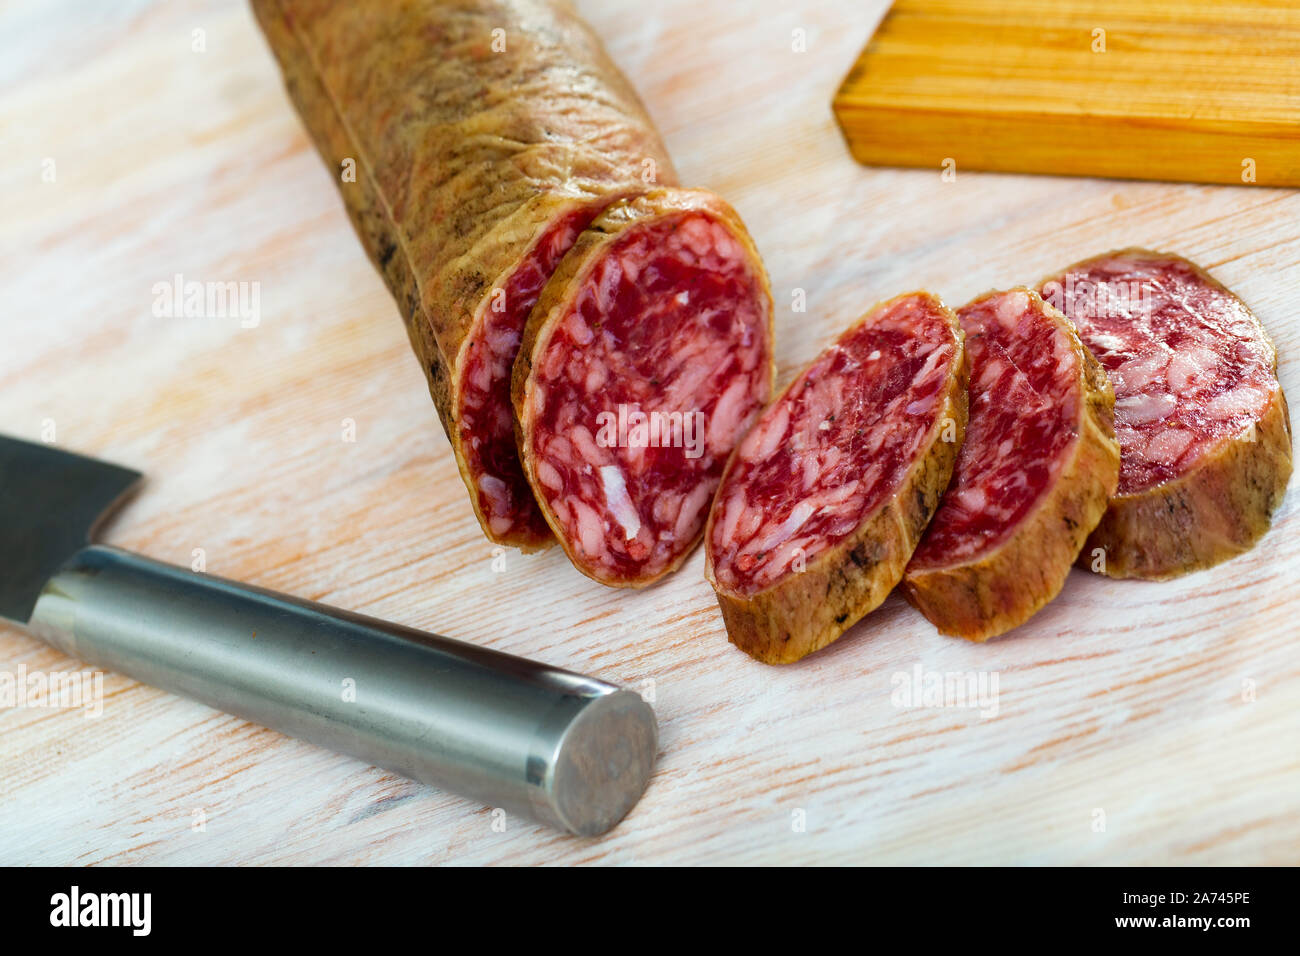 Thin salchichon sausage slices on wooden background, view from above Stock Photo